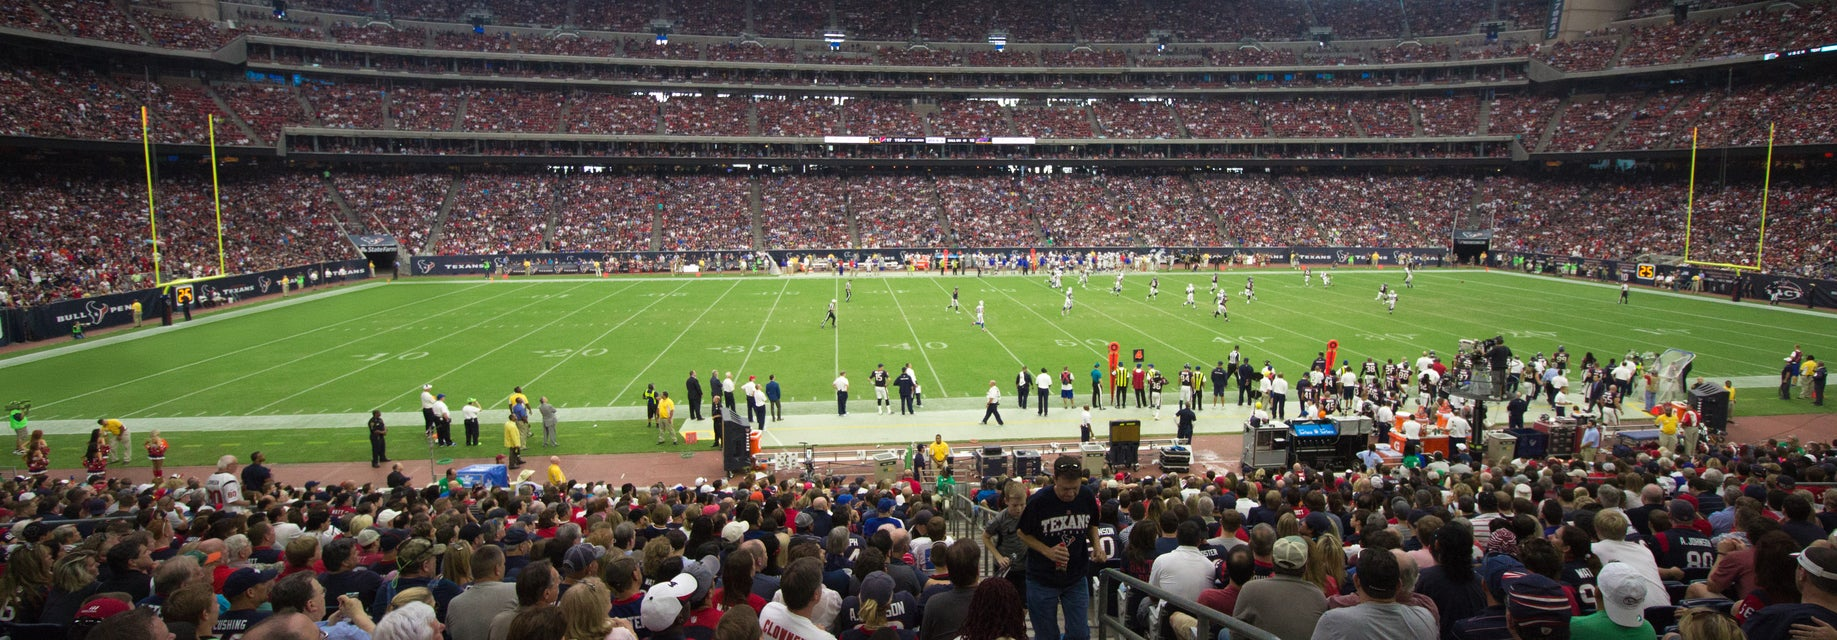 Seat view from Field Level Prime